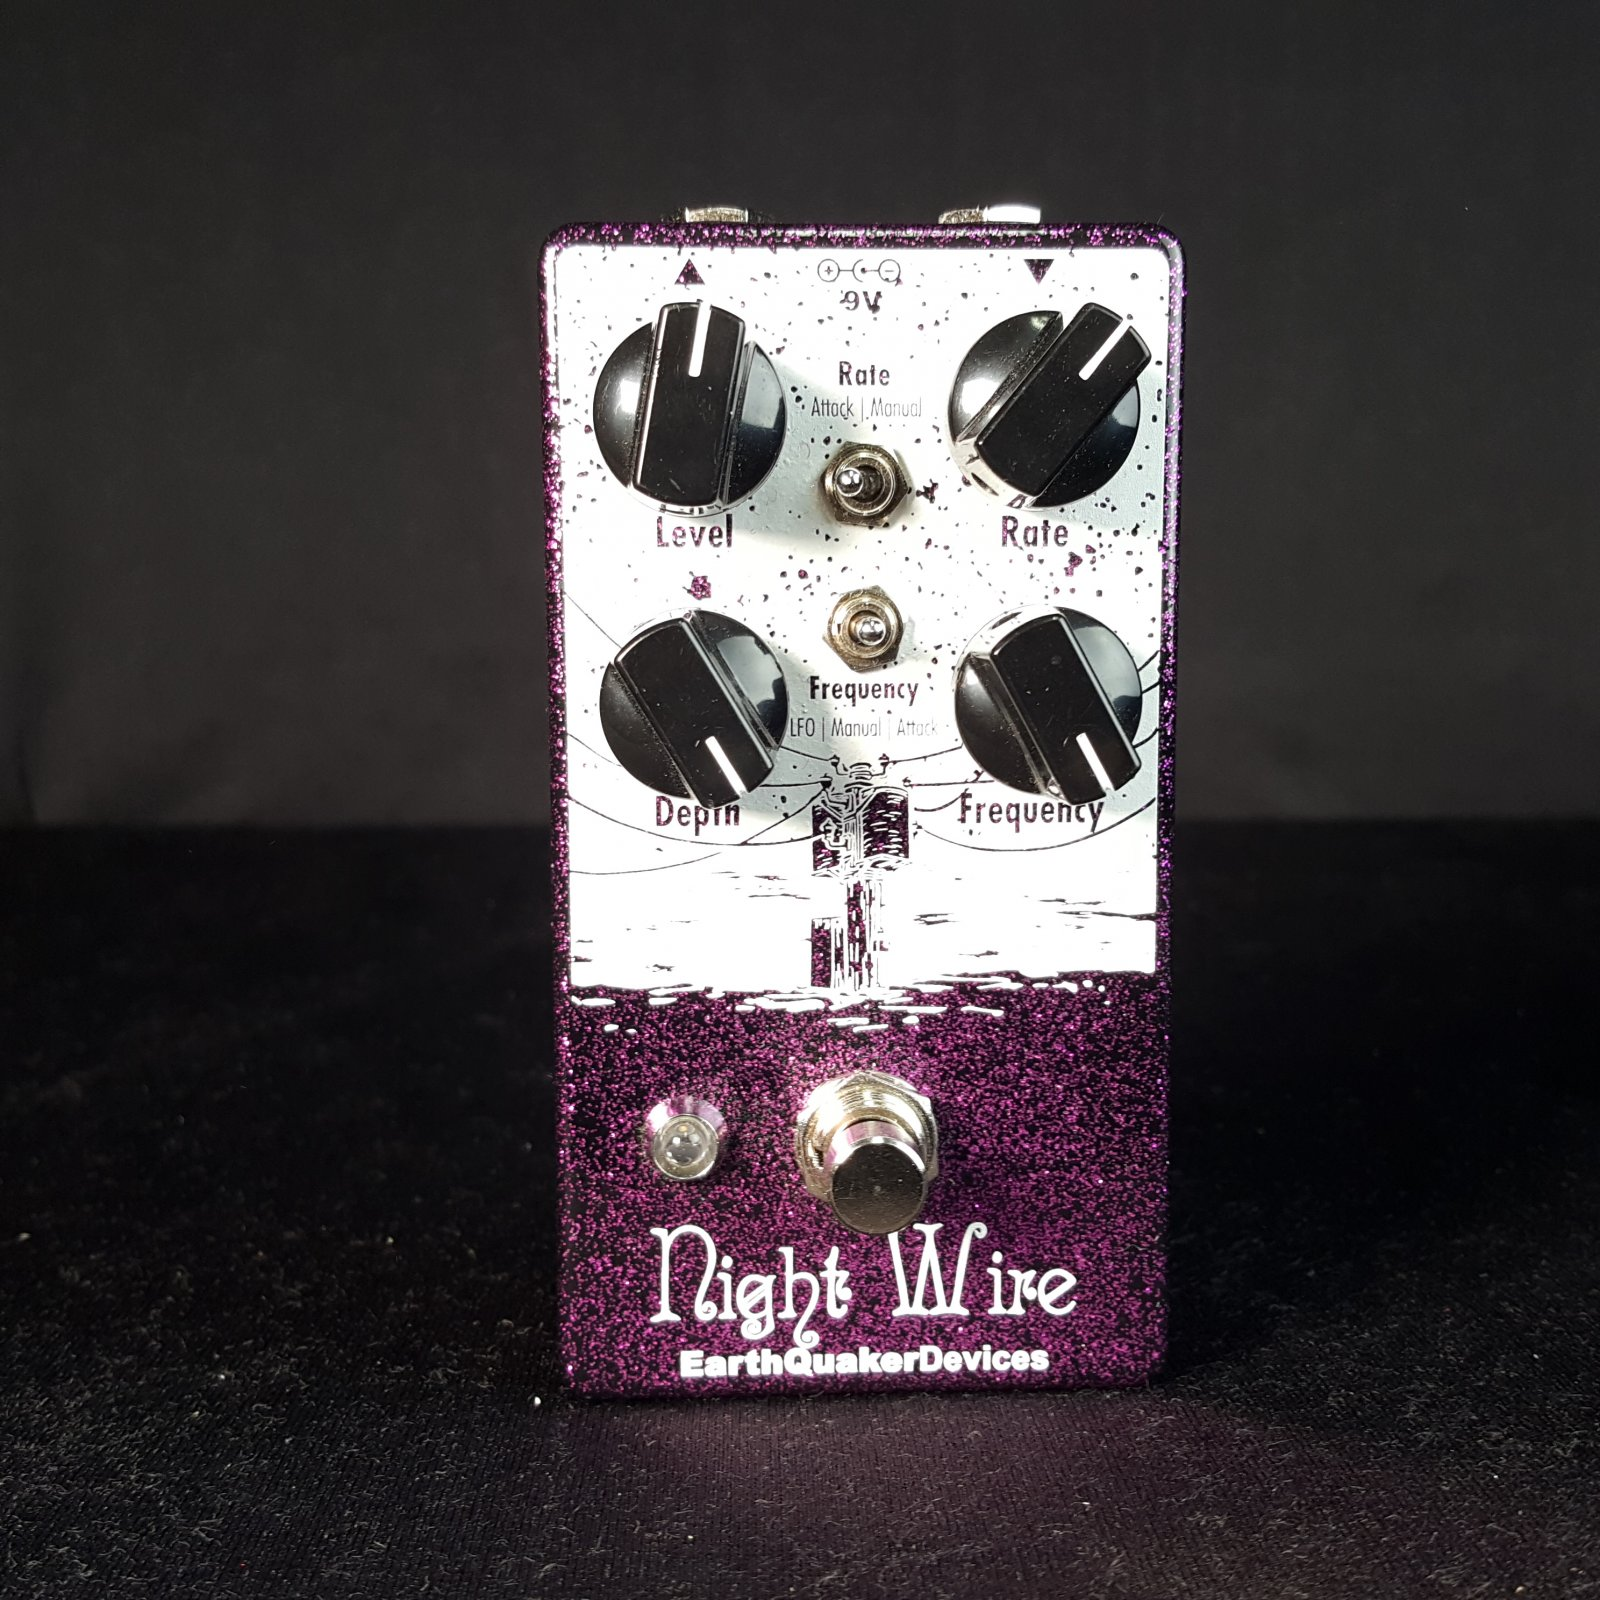 USED Earthquaker Devices Night Wire Harmonic Tremolo 2016 2018